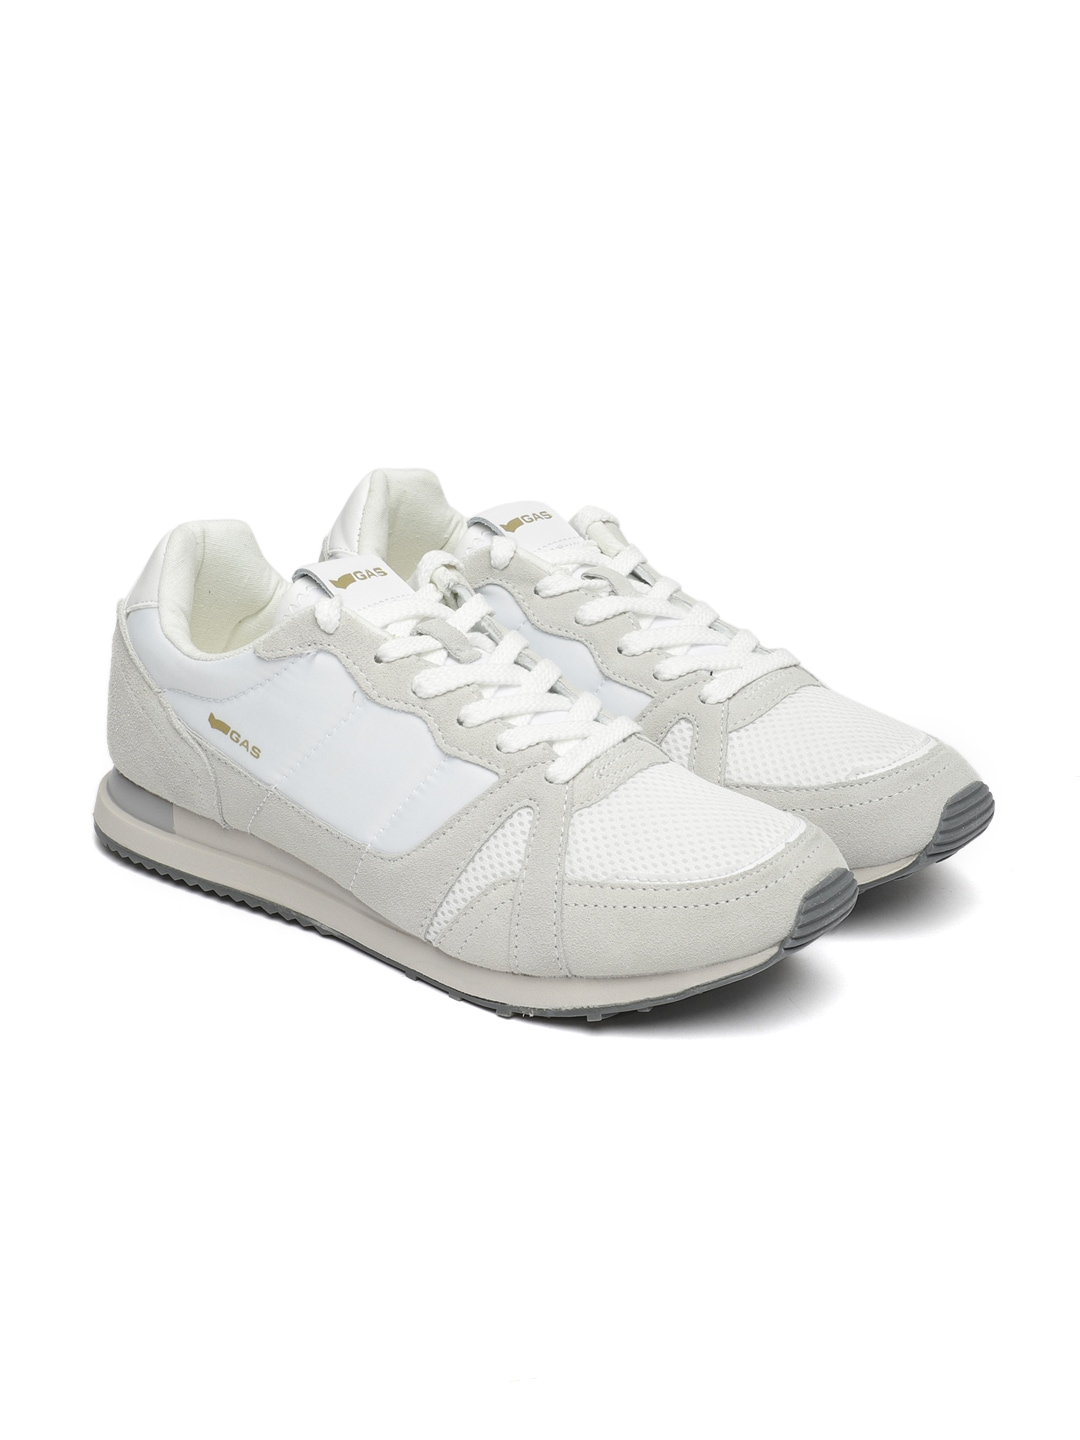 b22857057c8 White Leather Shoes - Buy White Leather Shoes Online in India